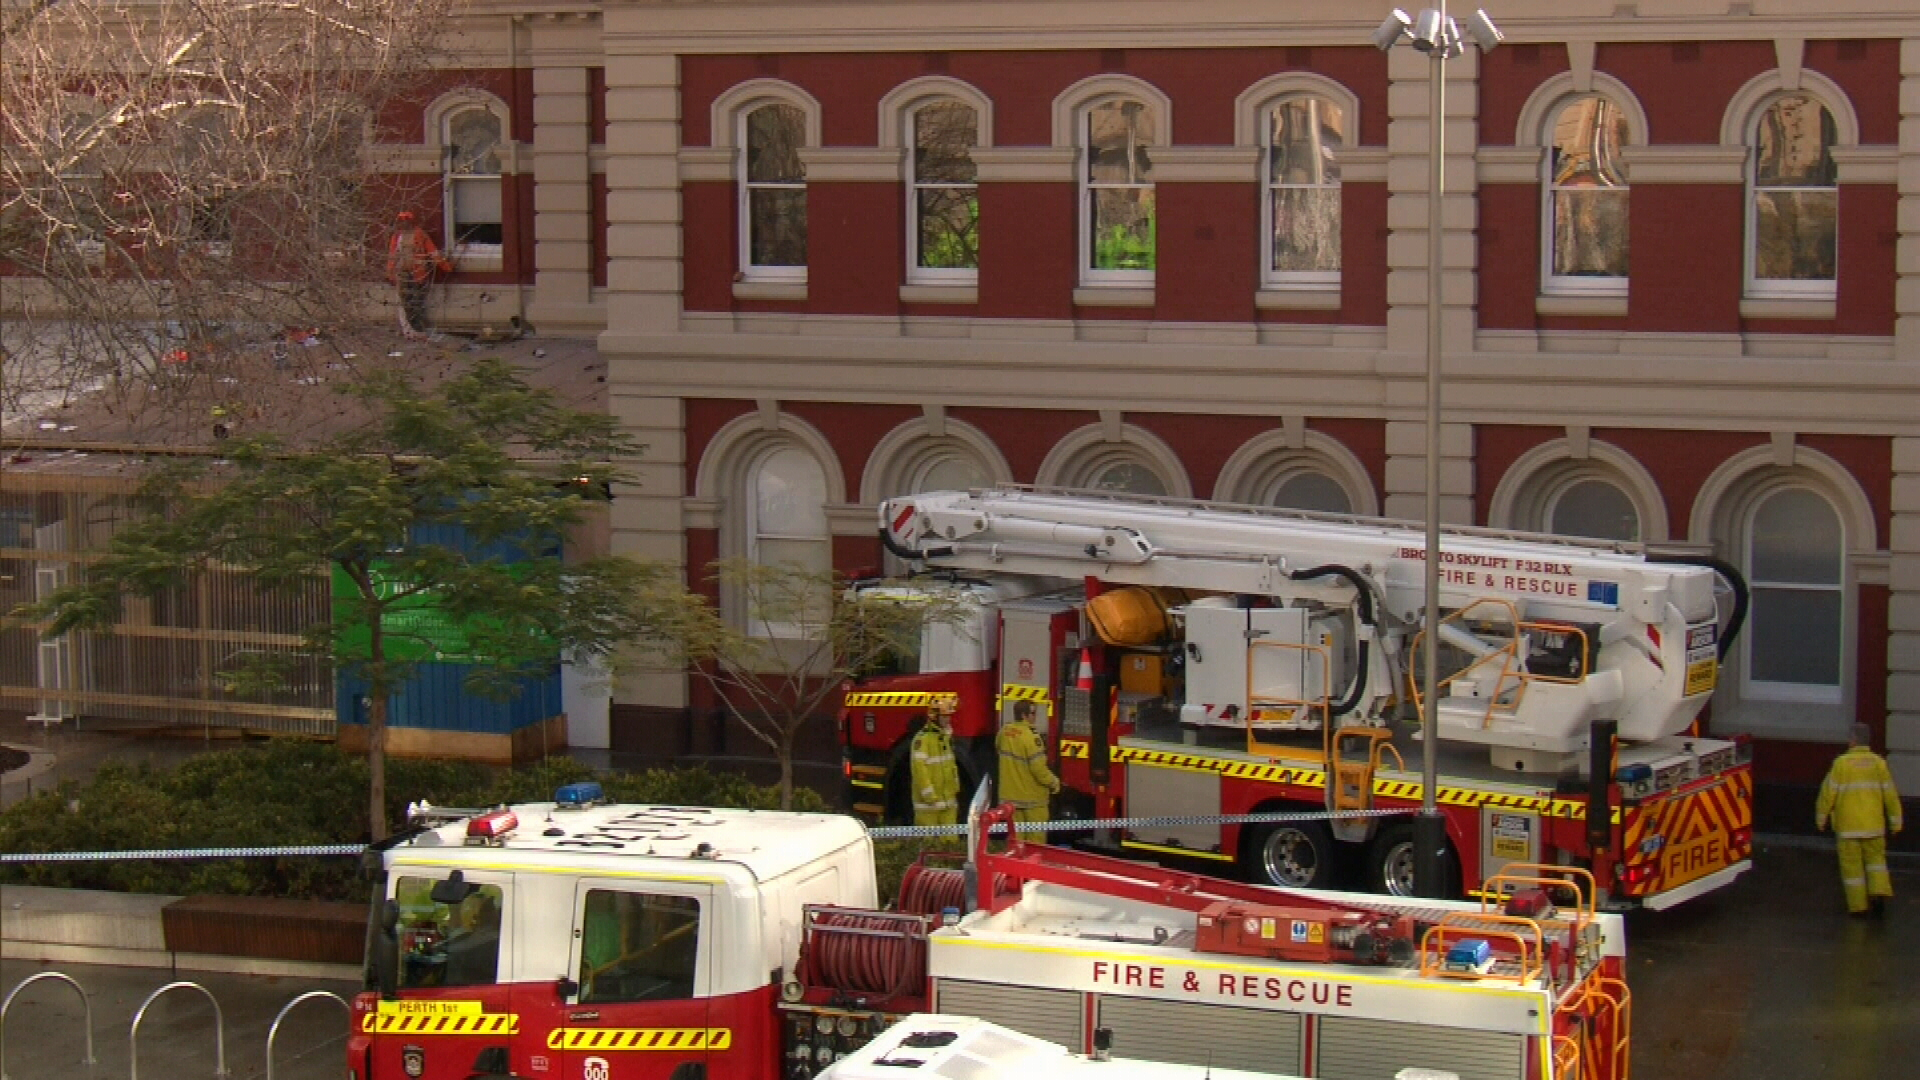 Naked man on train station roof puts Perth street in lockdown